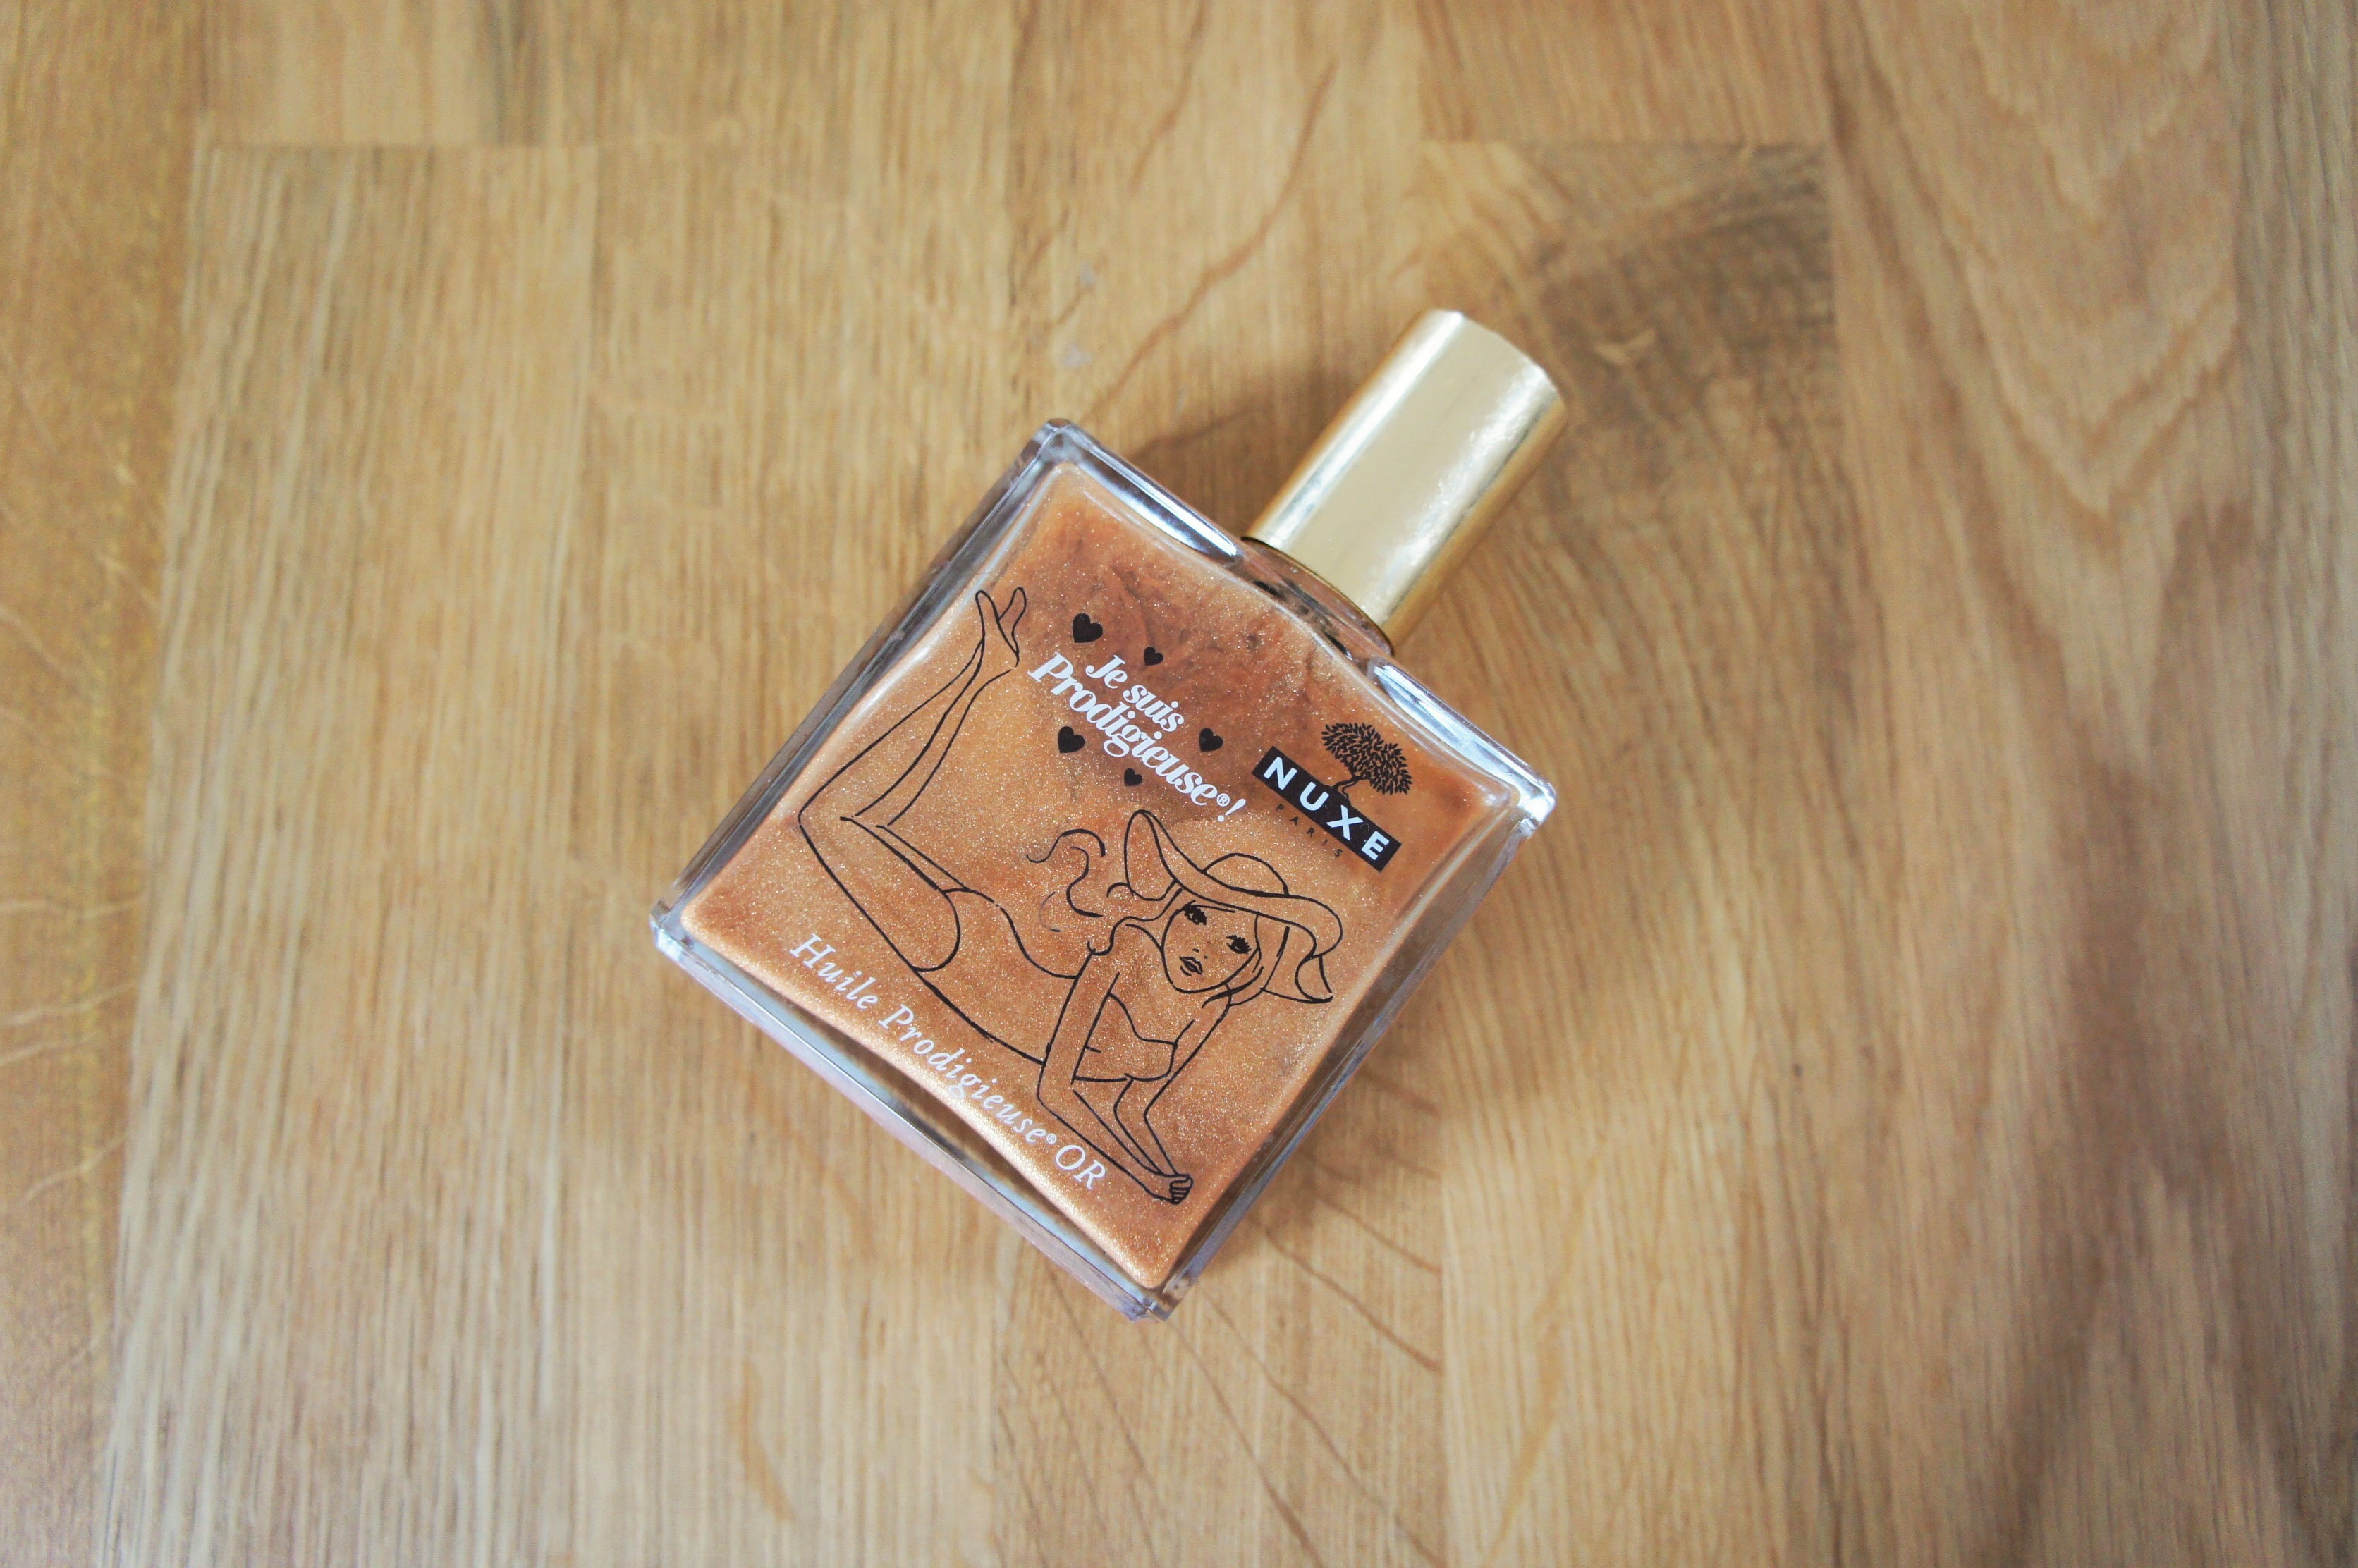 Nuxe huile prodigieuse shimmering